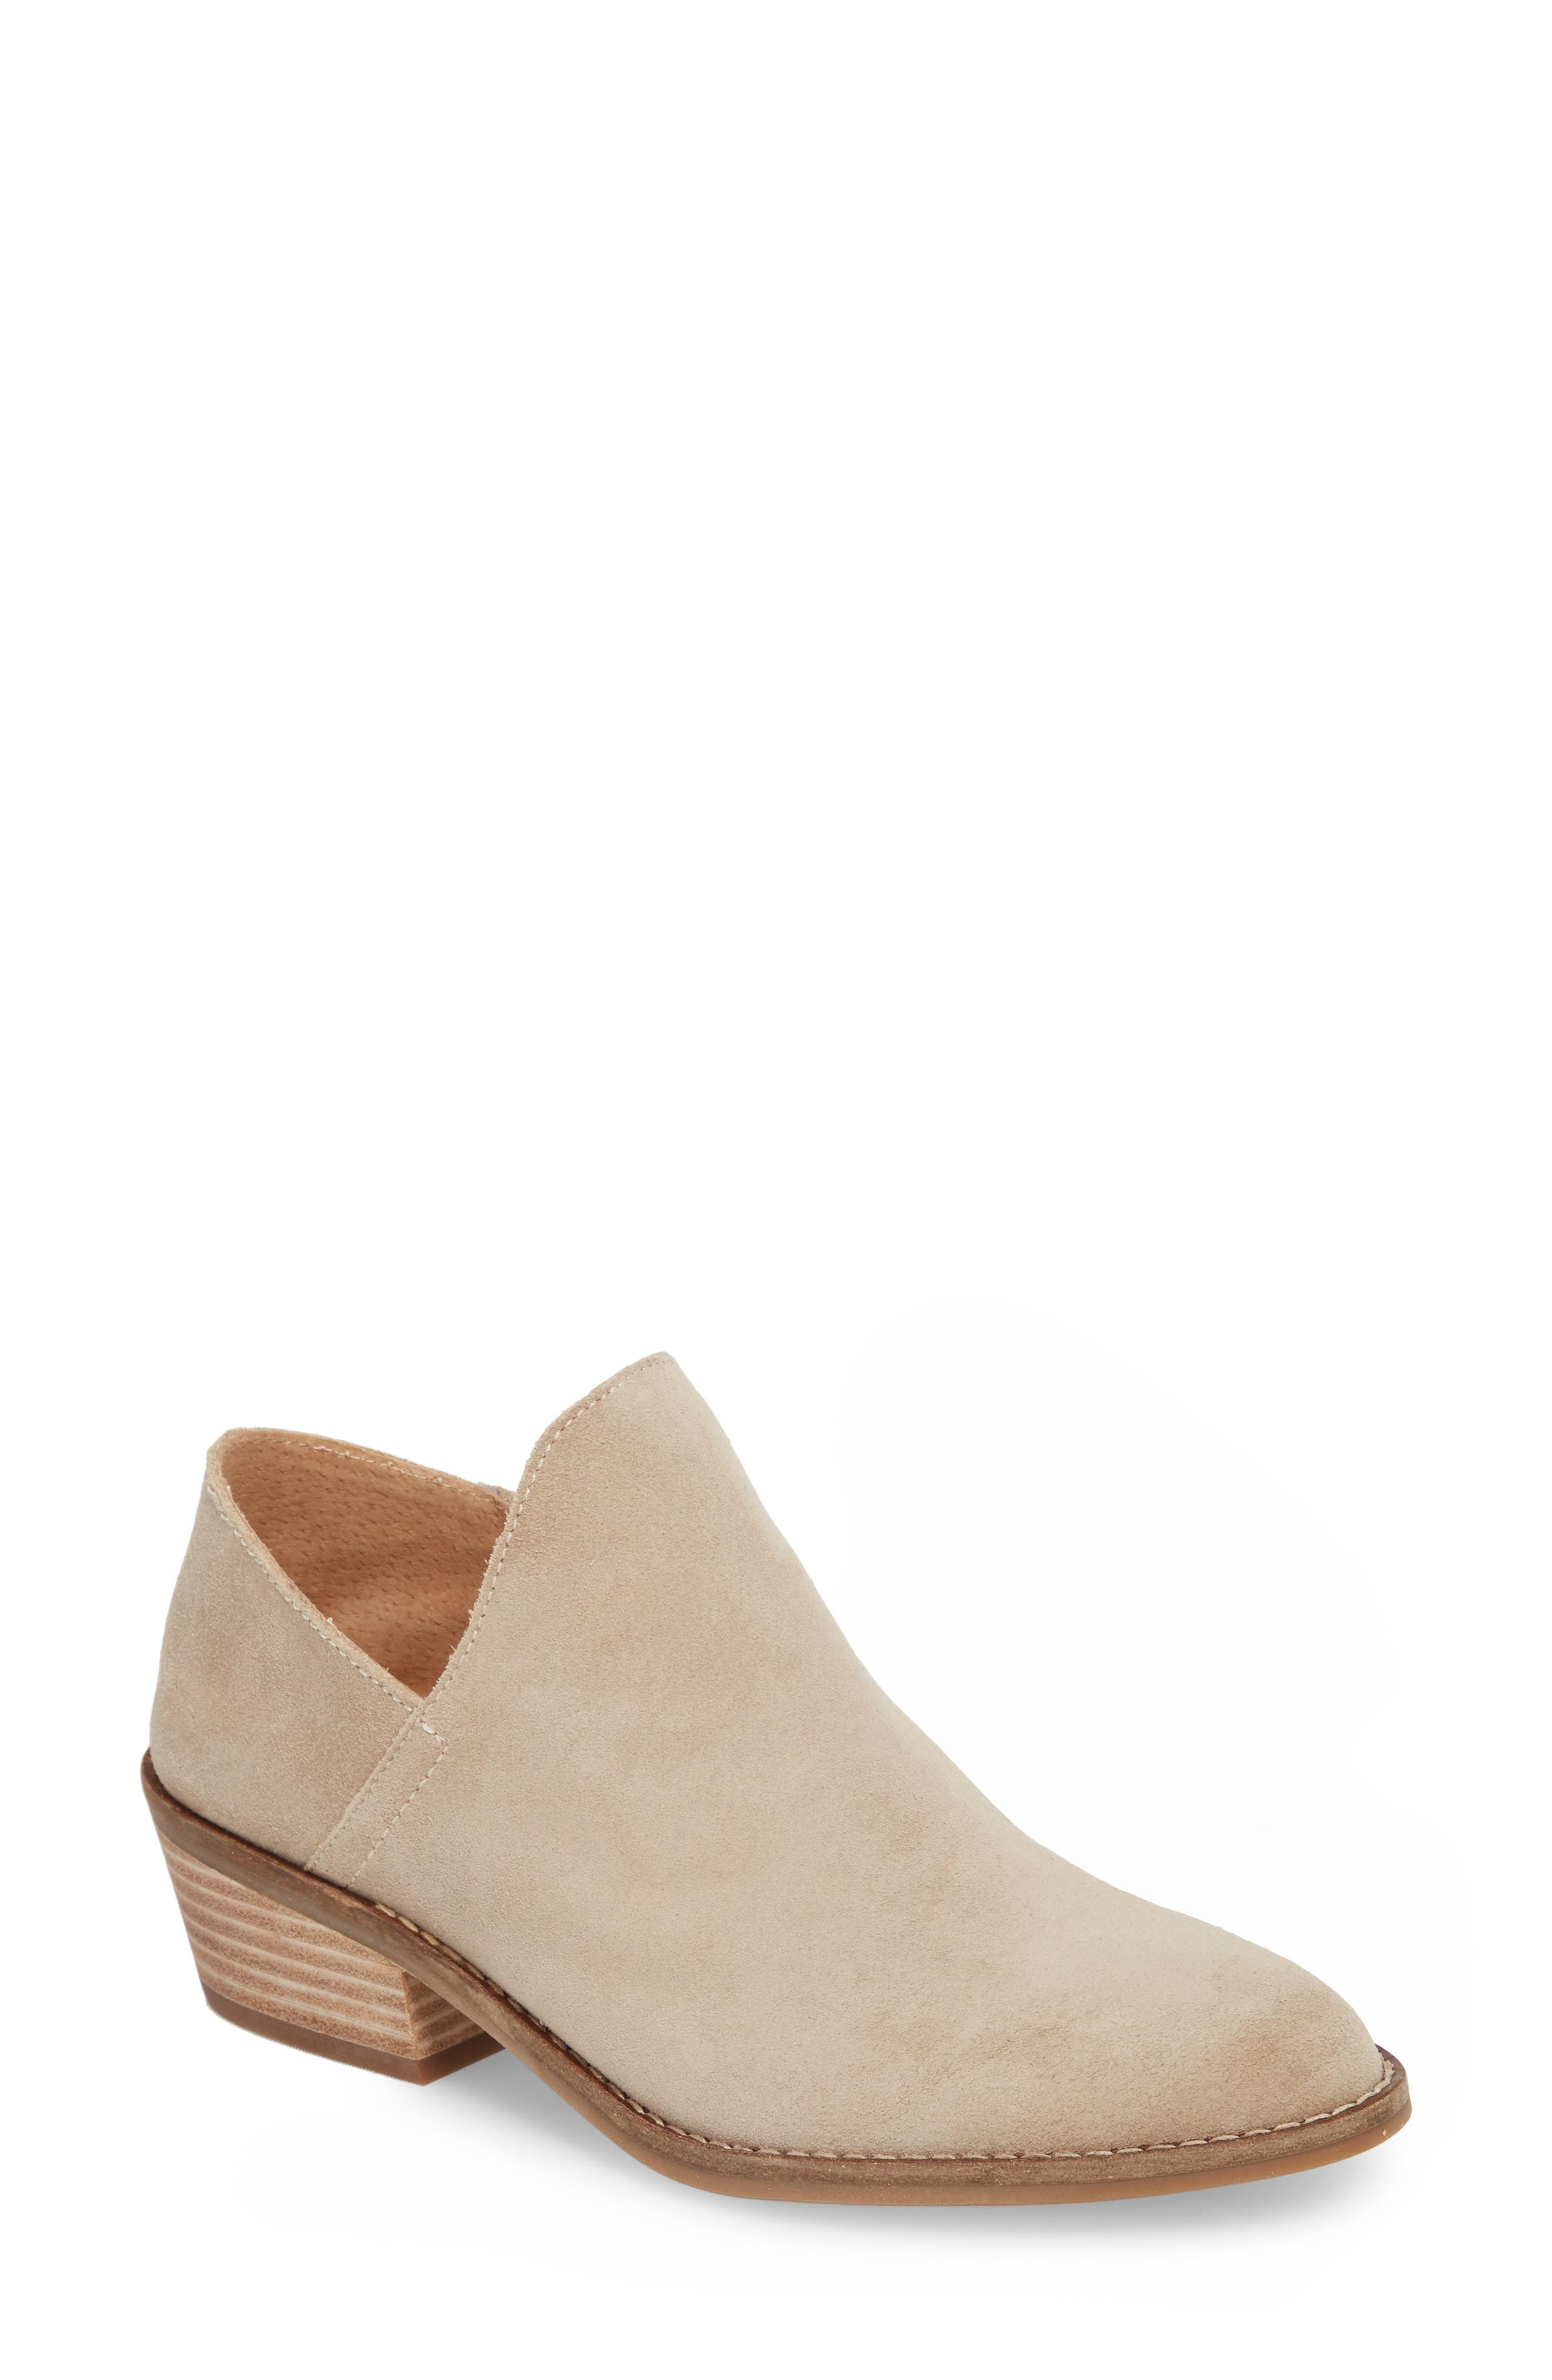 Fausst Bootie,                         Main,                         color, Mushroom Suede